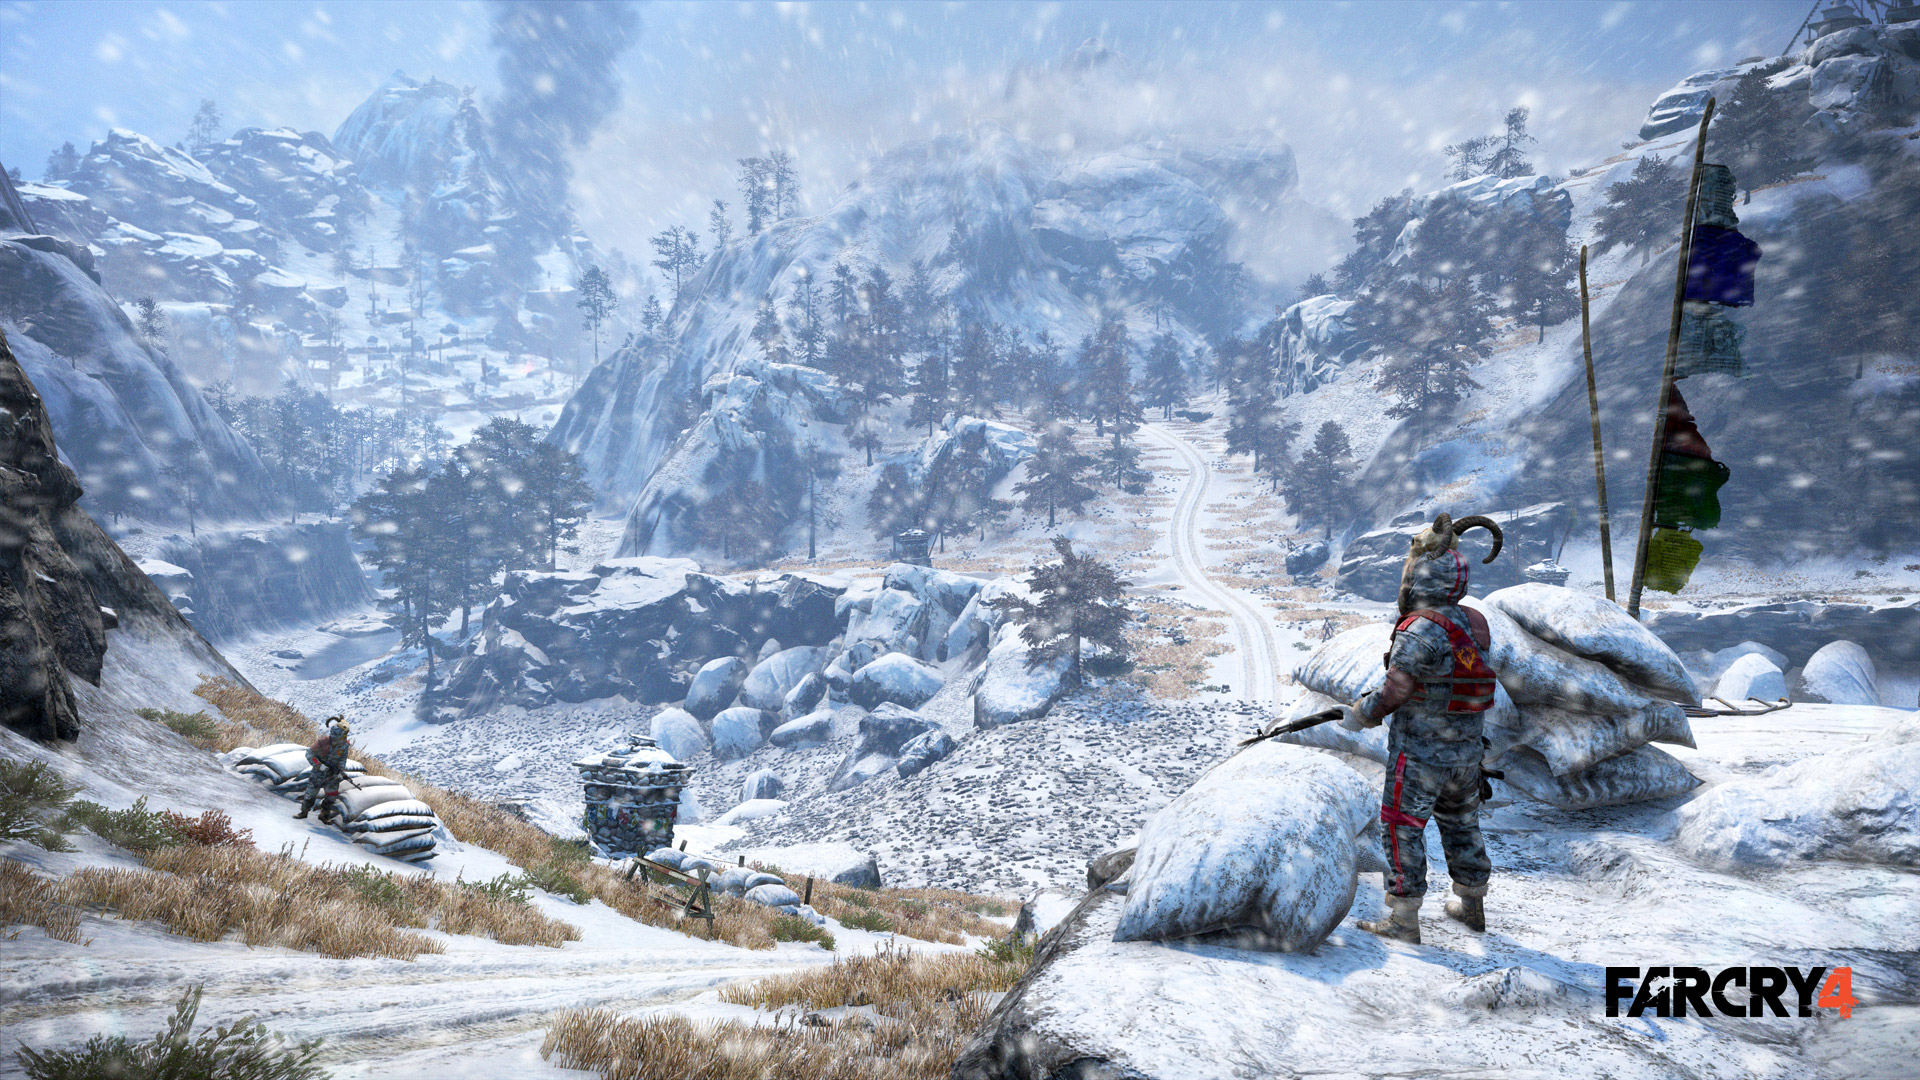 how to get far cry 4 for free